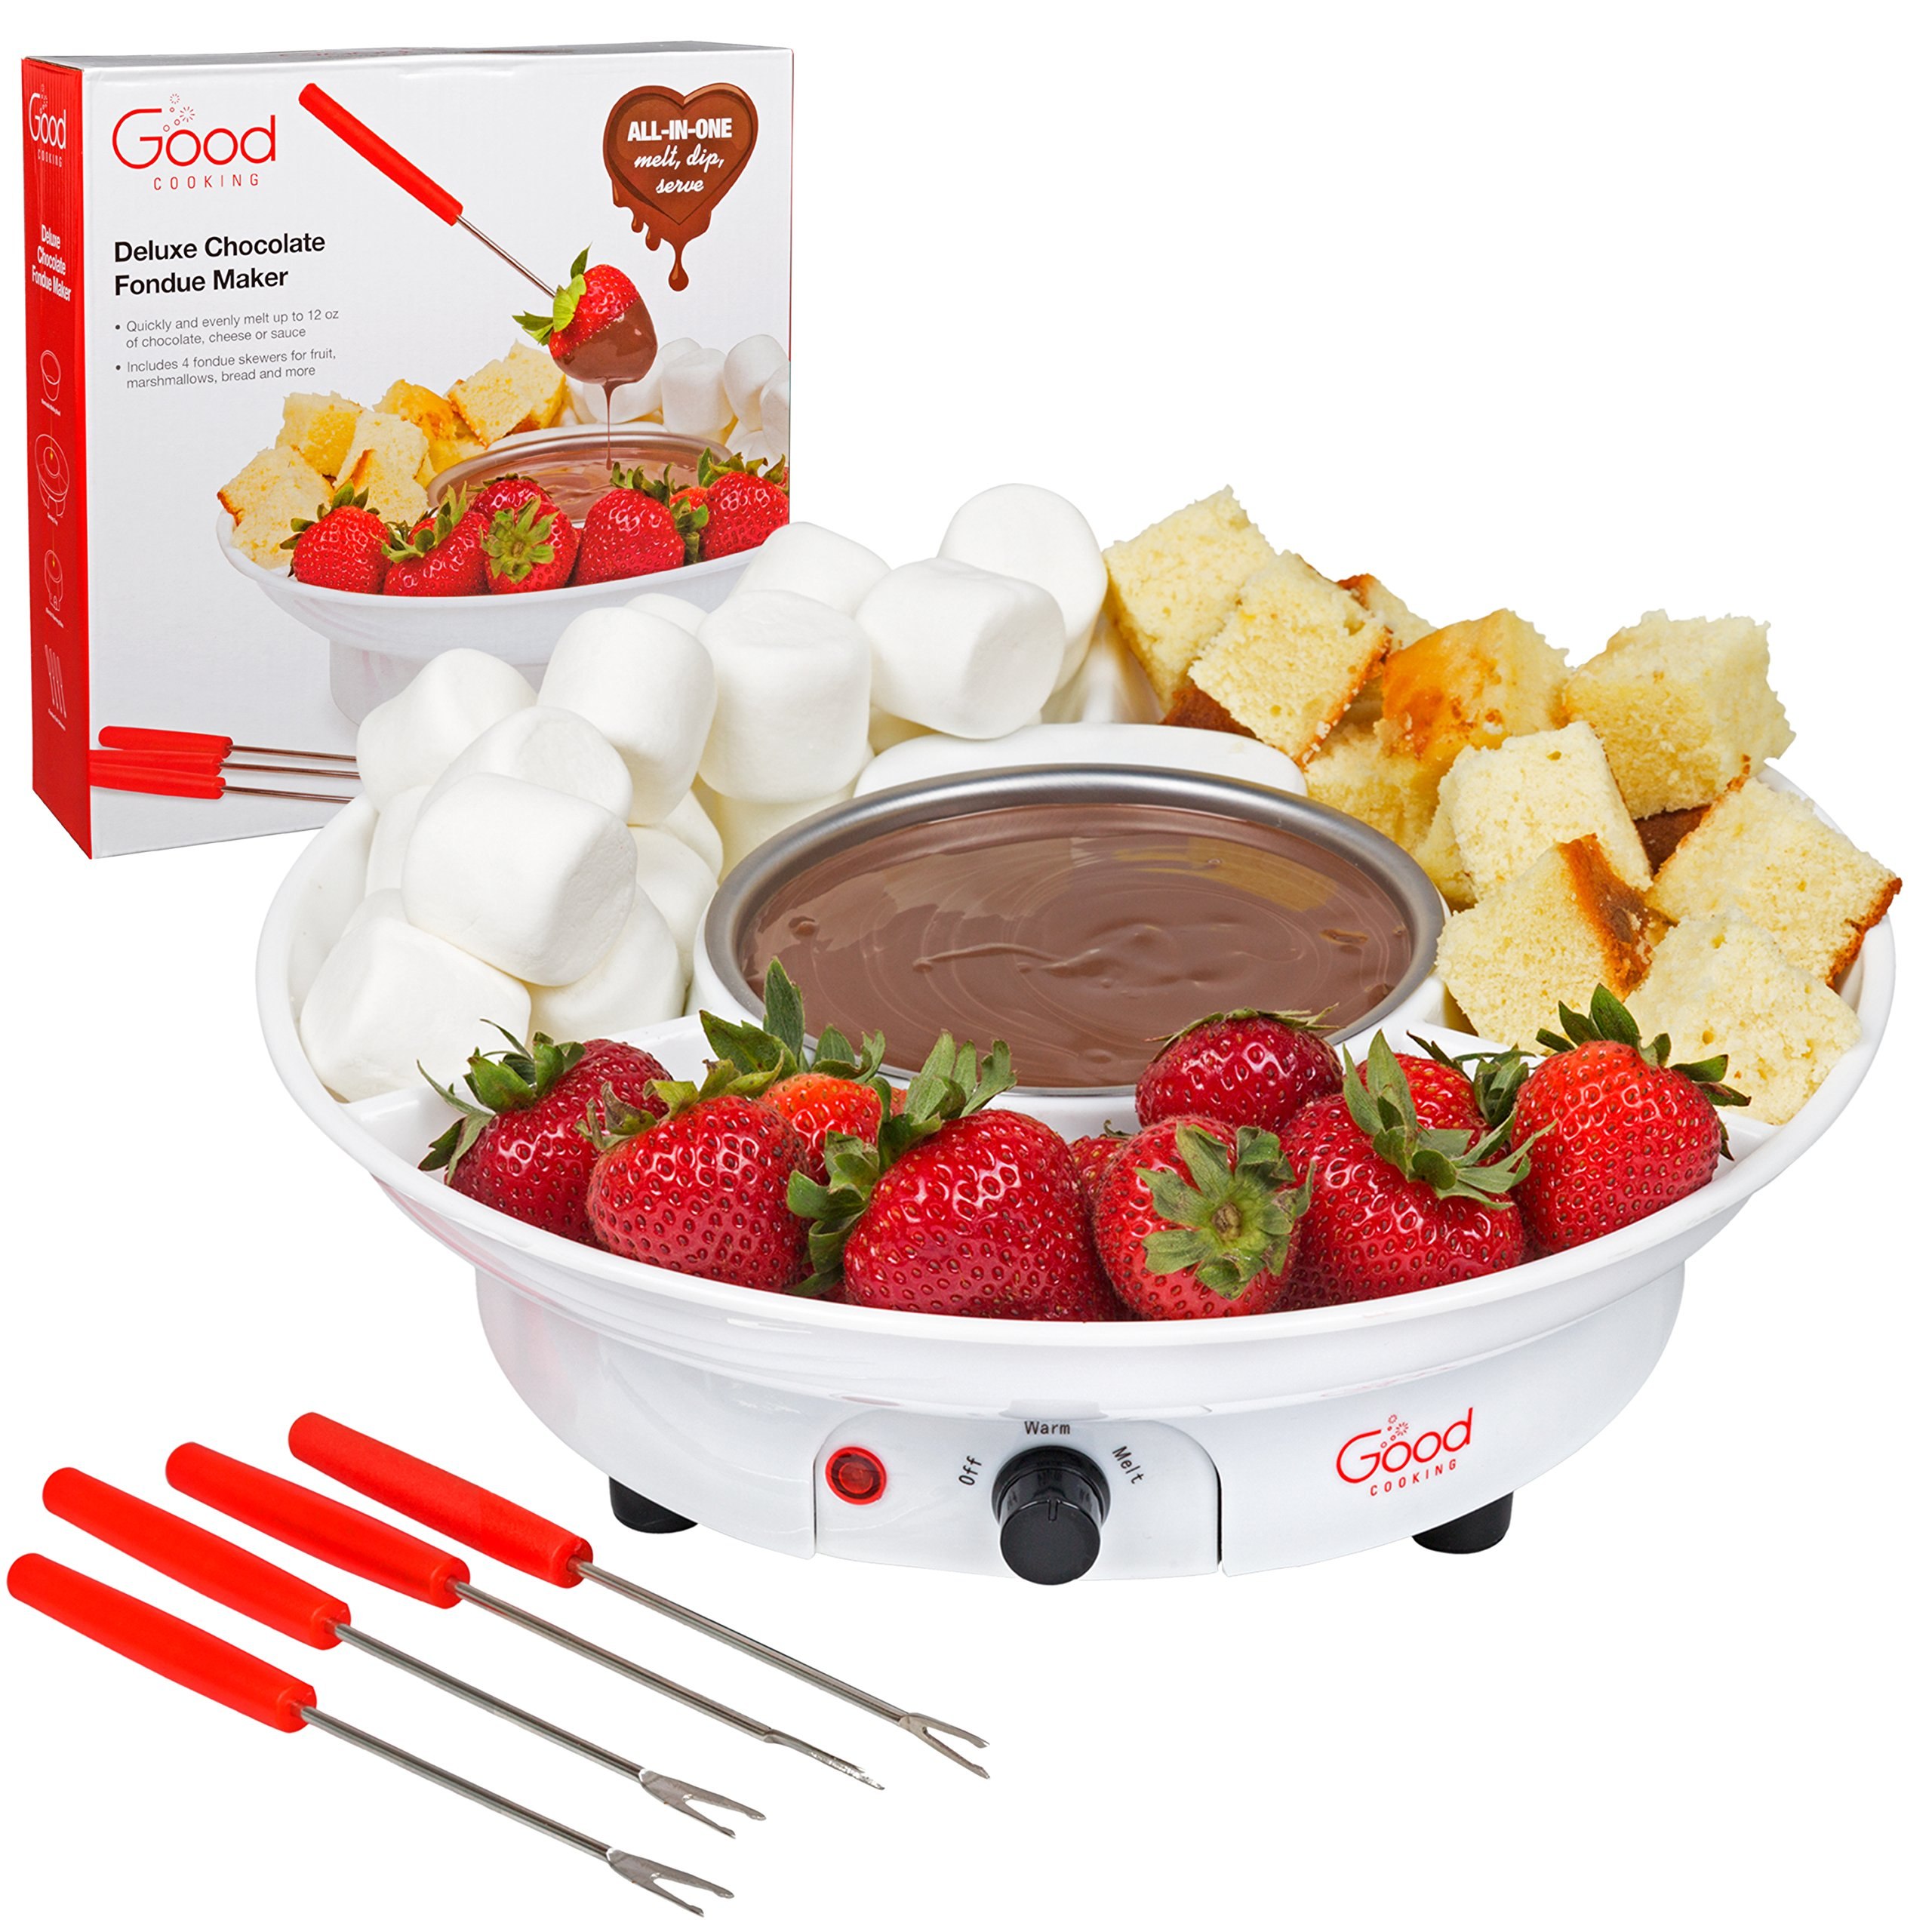 Chocolate Fondue Maker- Deluxe Electric Dessert Fountain Fondu Pot Set with 4 Forks and Party Serving Tray - A Great Valentine's Day Gift! by Good Cooking